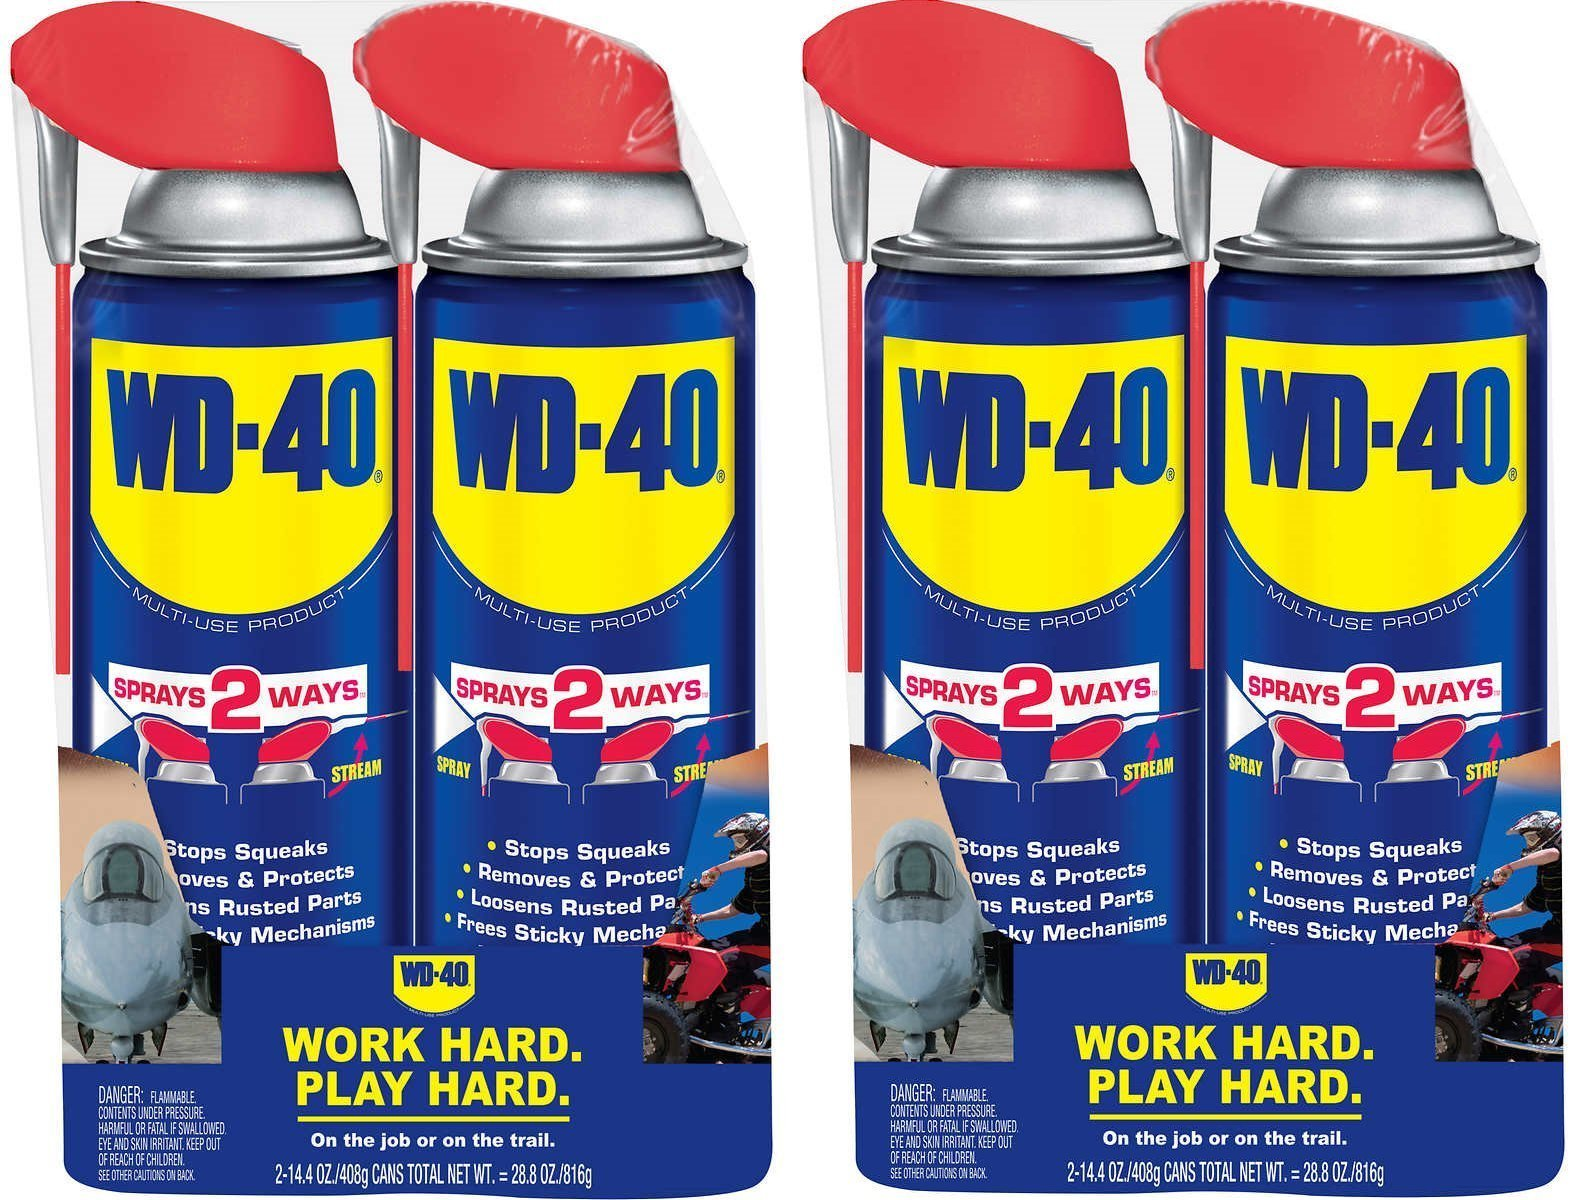 WD-40 Multi-Use Product with SMART STRAW SPRAYS 2 WAYS 14.4 OZ [2-Pack] (2-Case (4 units))